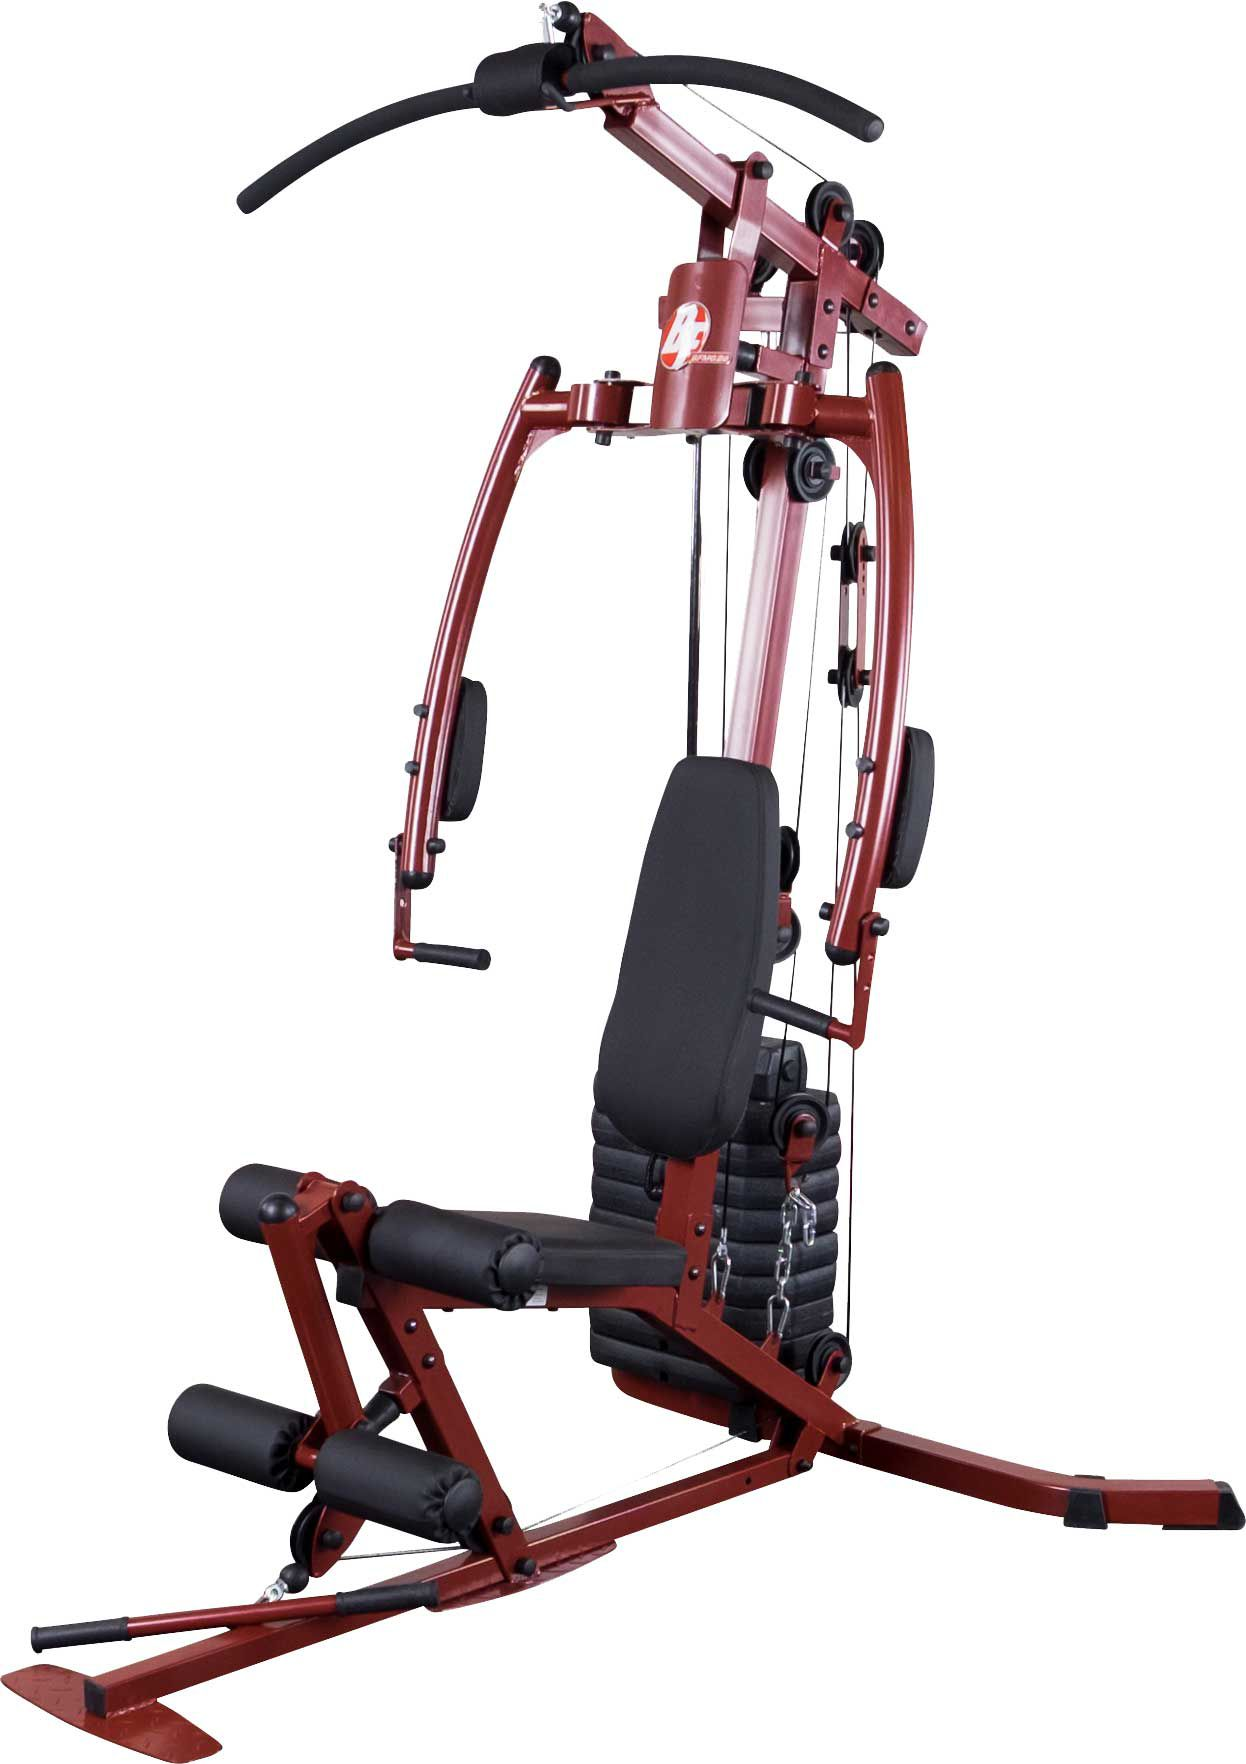 Home Gym Equipment DICKS Sporting Goods - Home gym equipment for sale